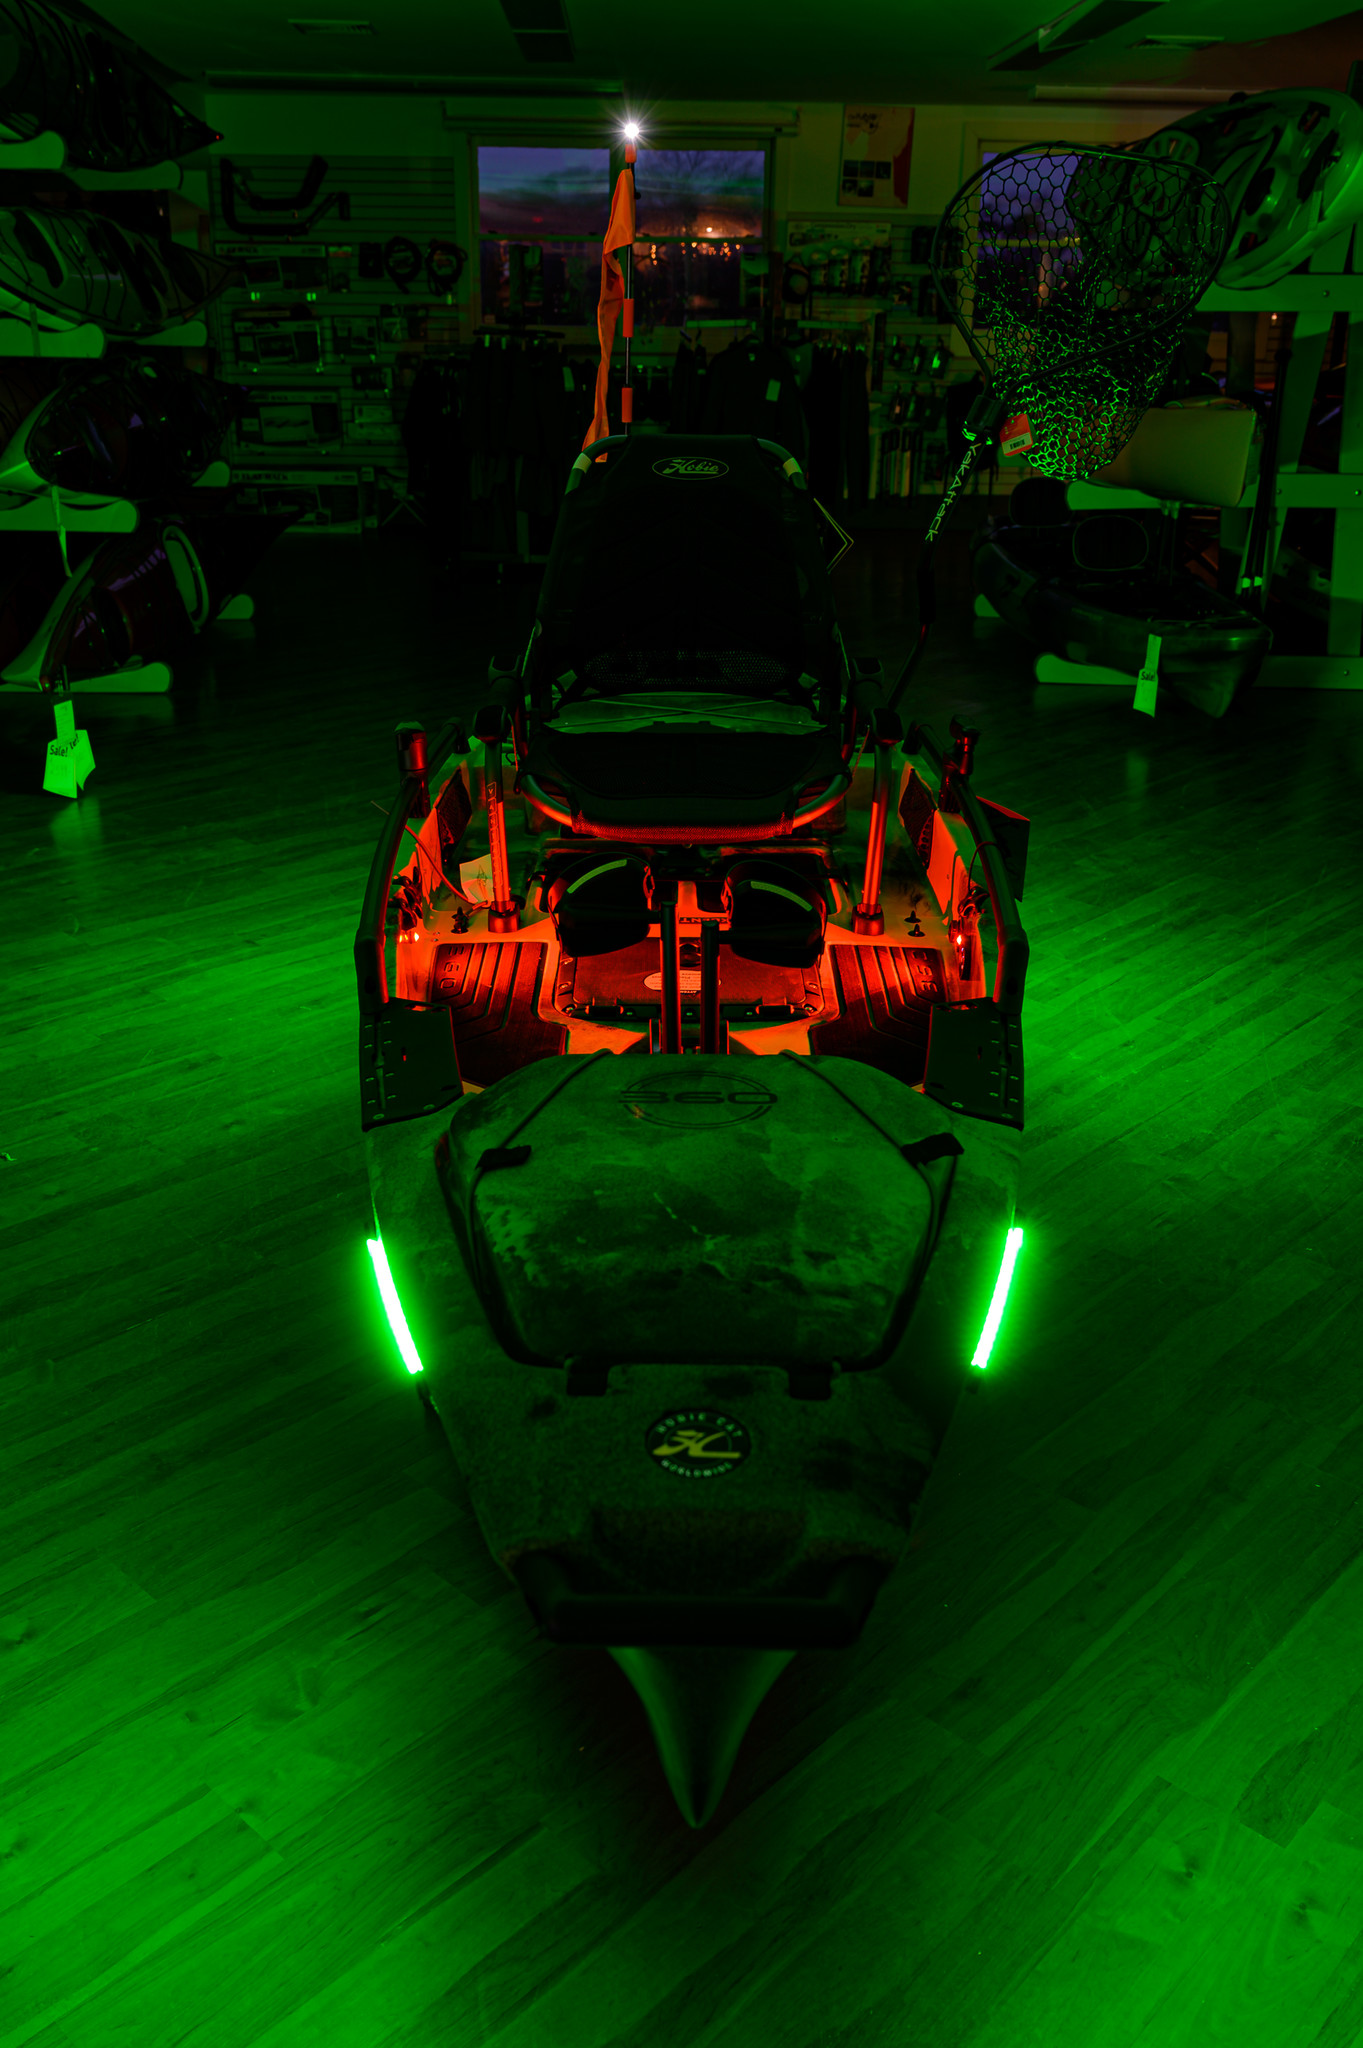 Hobie Pro Angler rigged with YakPower lights